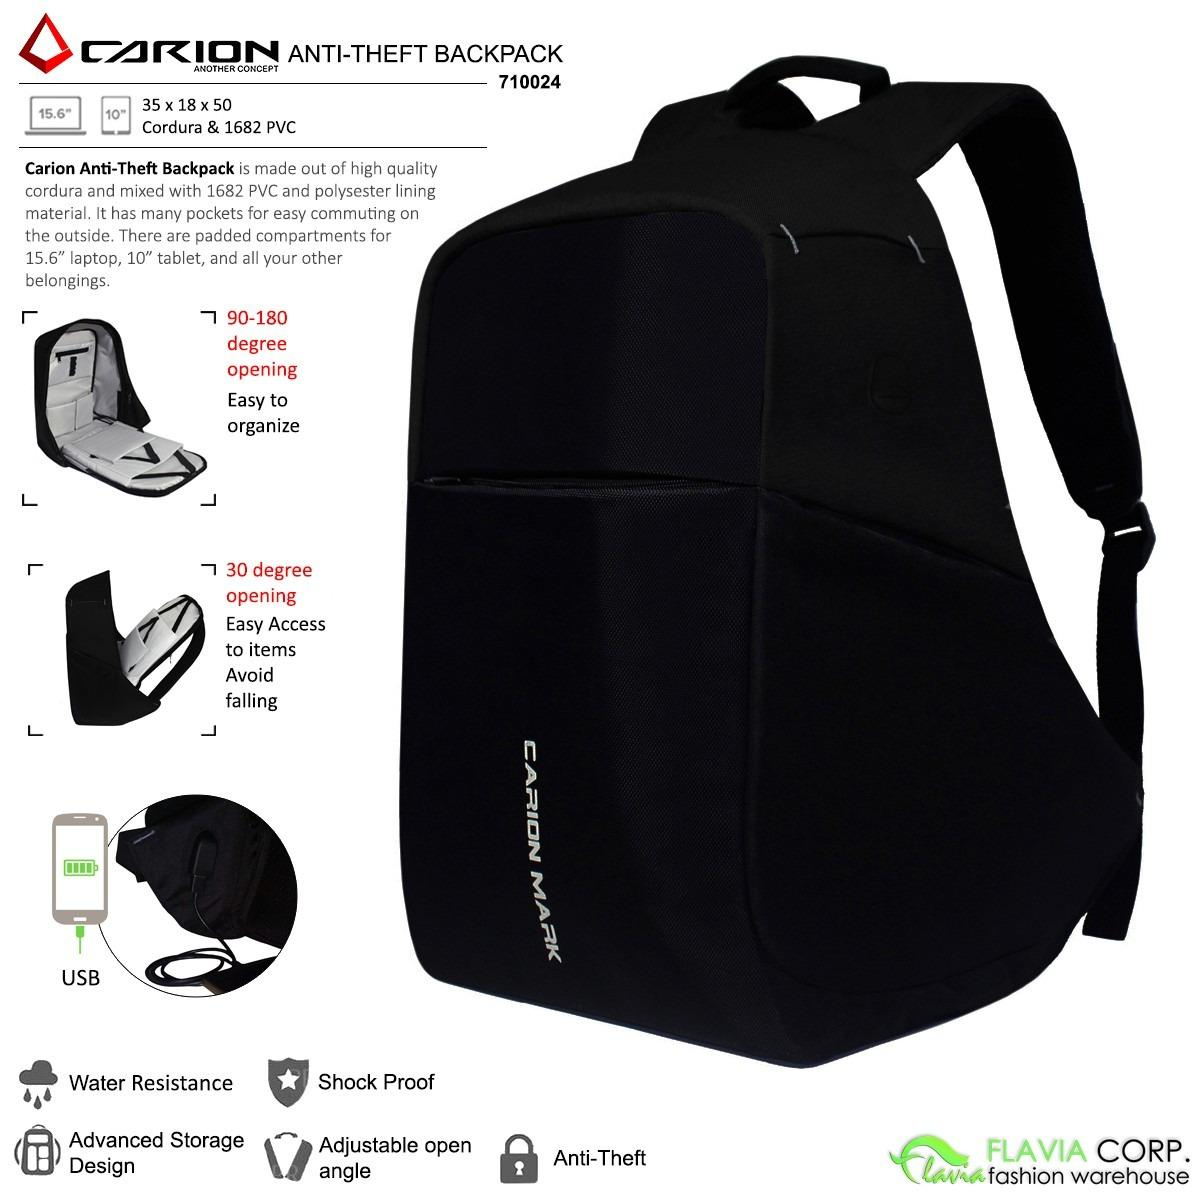 Tas Ransel Laptop Anti Maling Smart Anti Theft Backpack 710024 Original